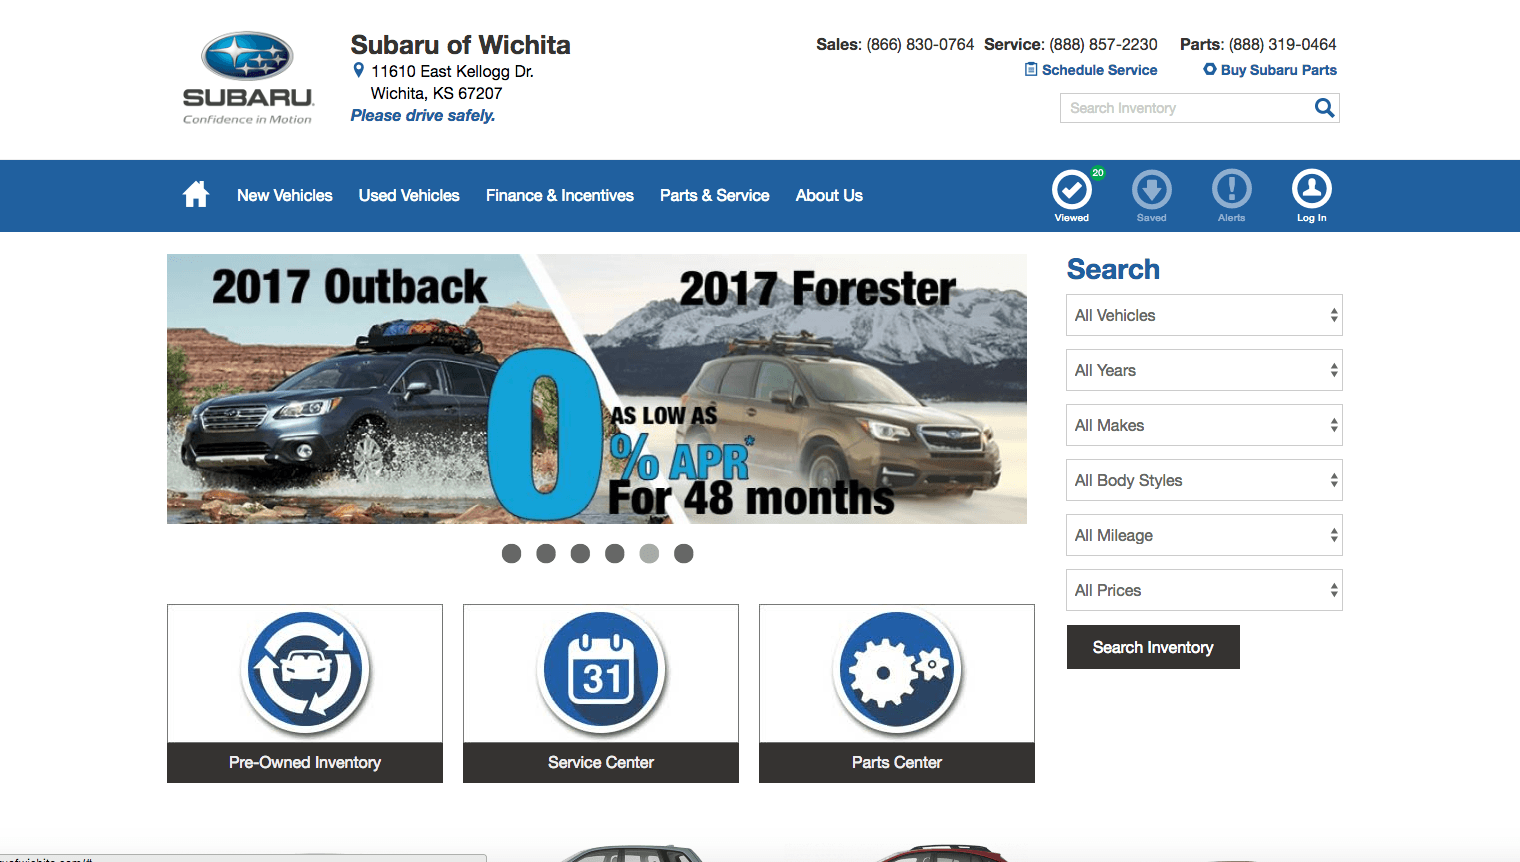 Subaru of Wichita